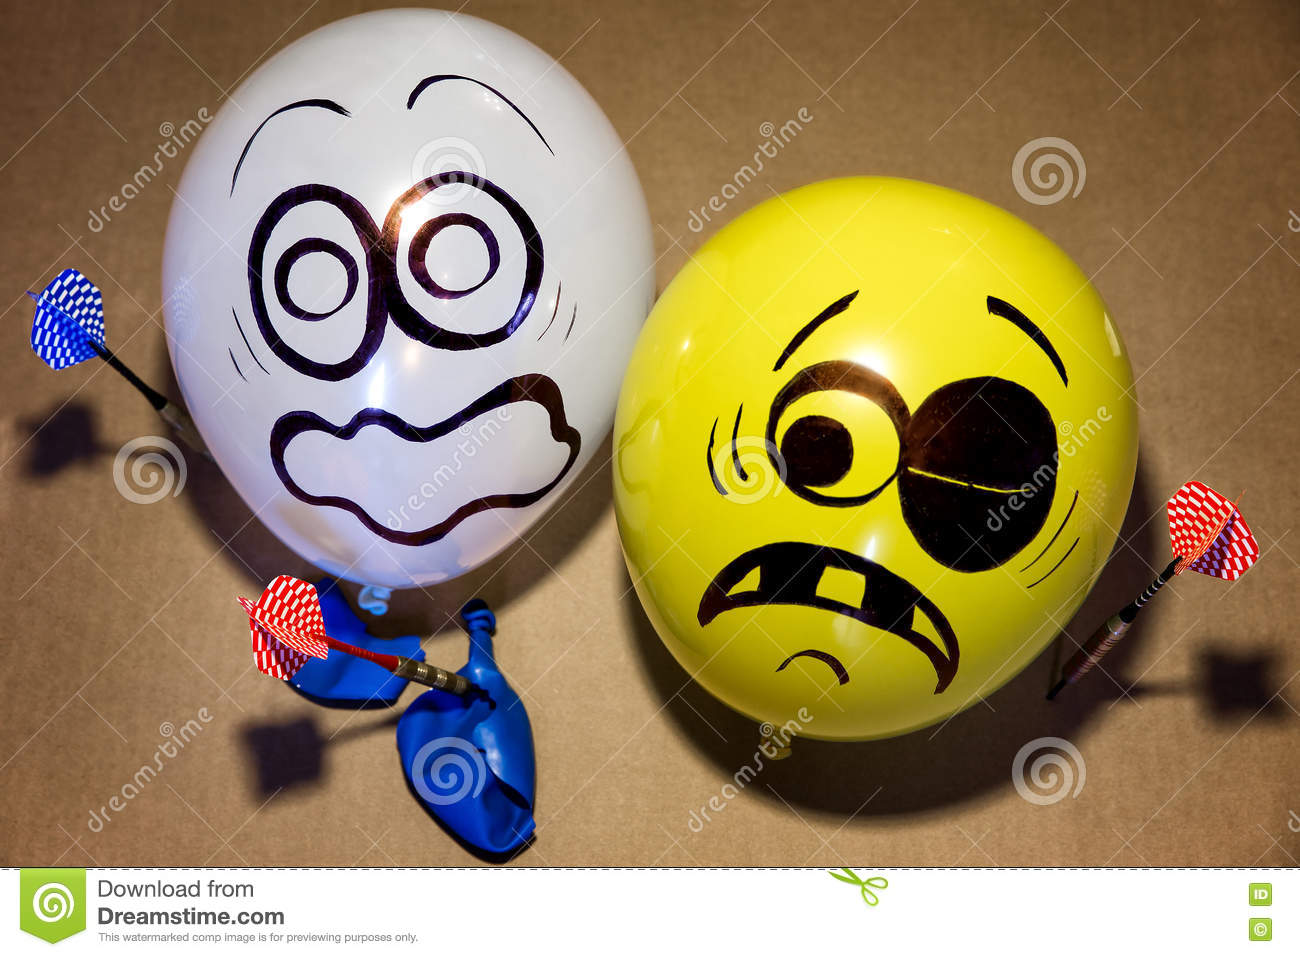 Funny balloon faces are scared